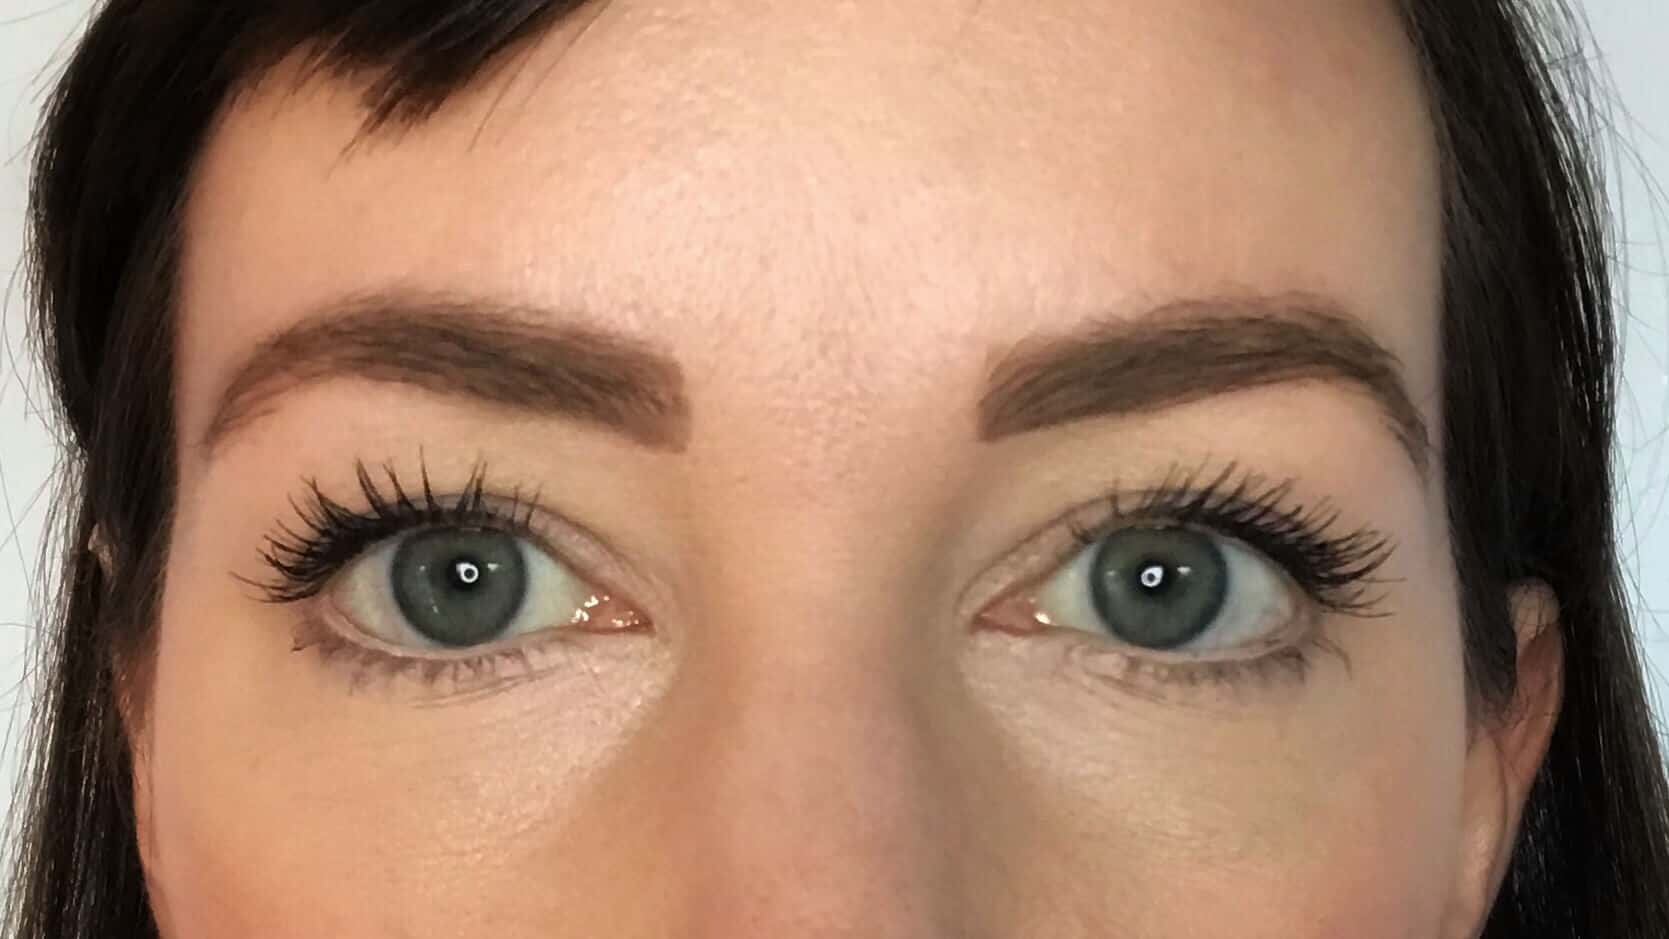 Both eyebrows with natural eyebrow pencil to make them look fuller